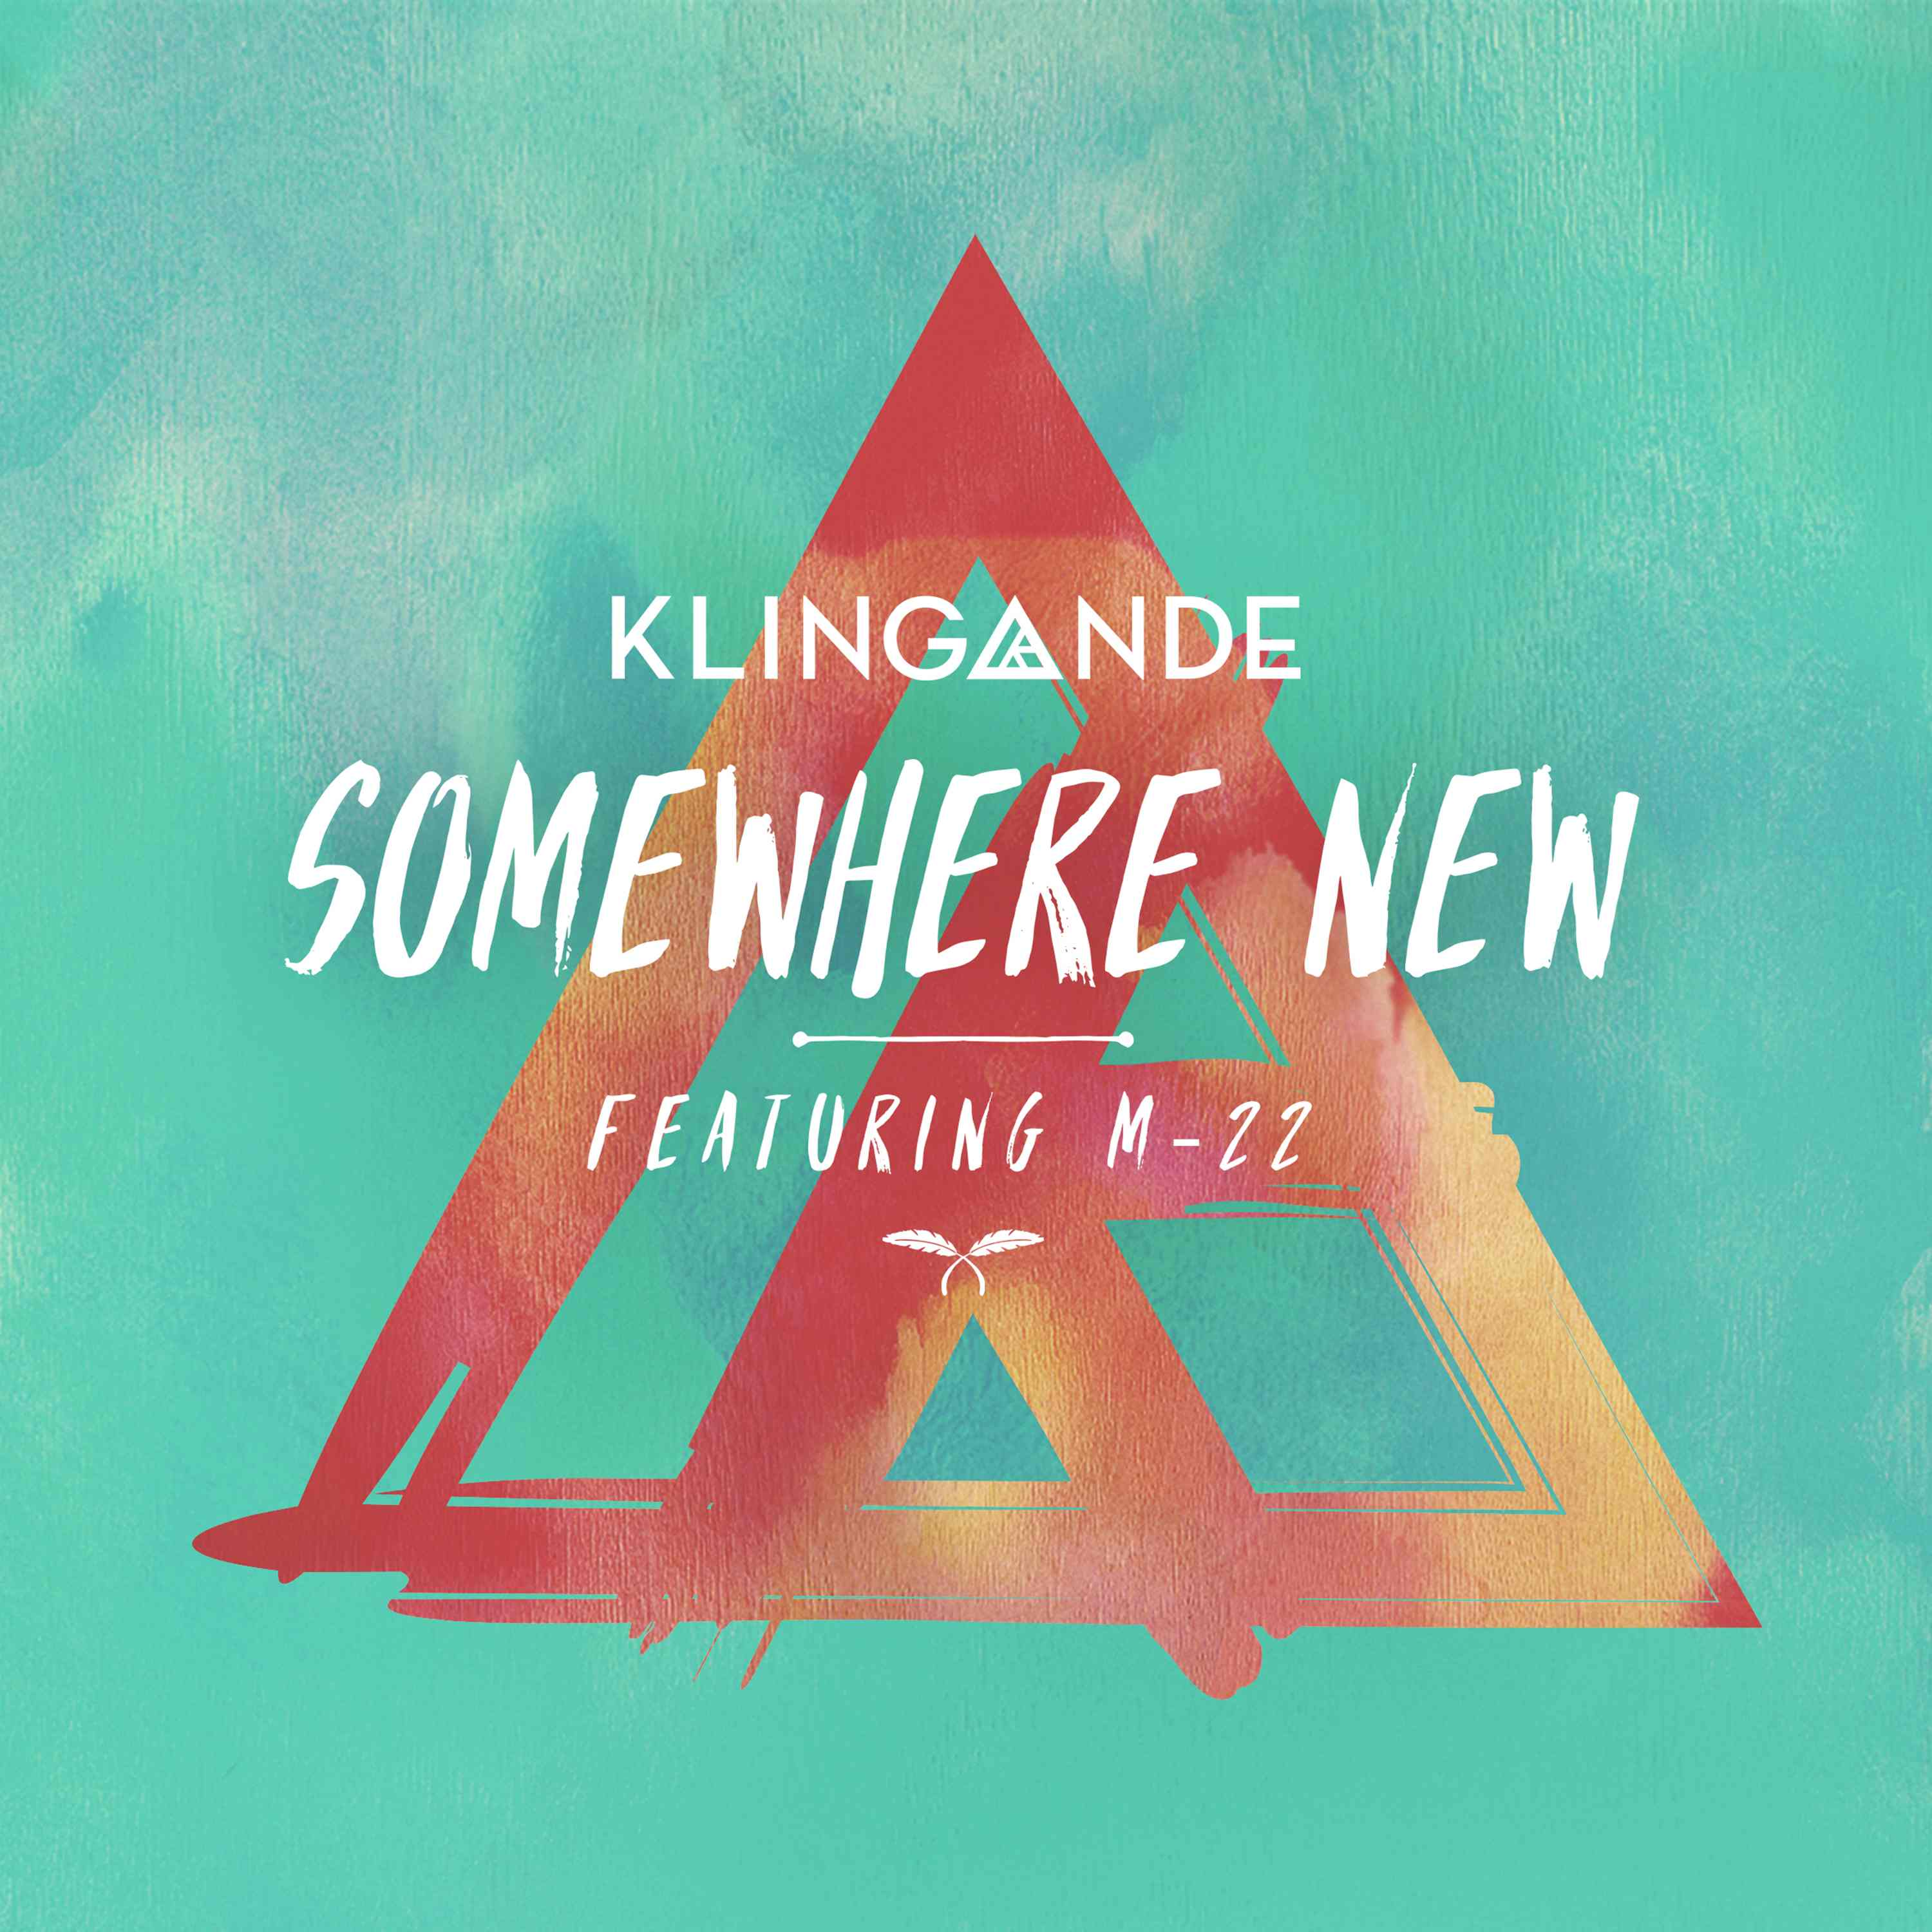 Klingande feat. M-22_artwork